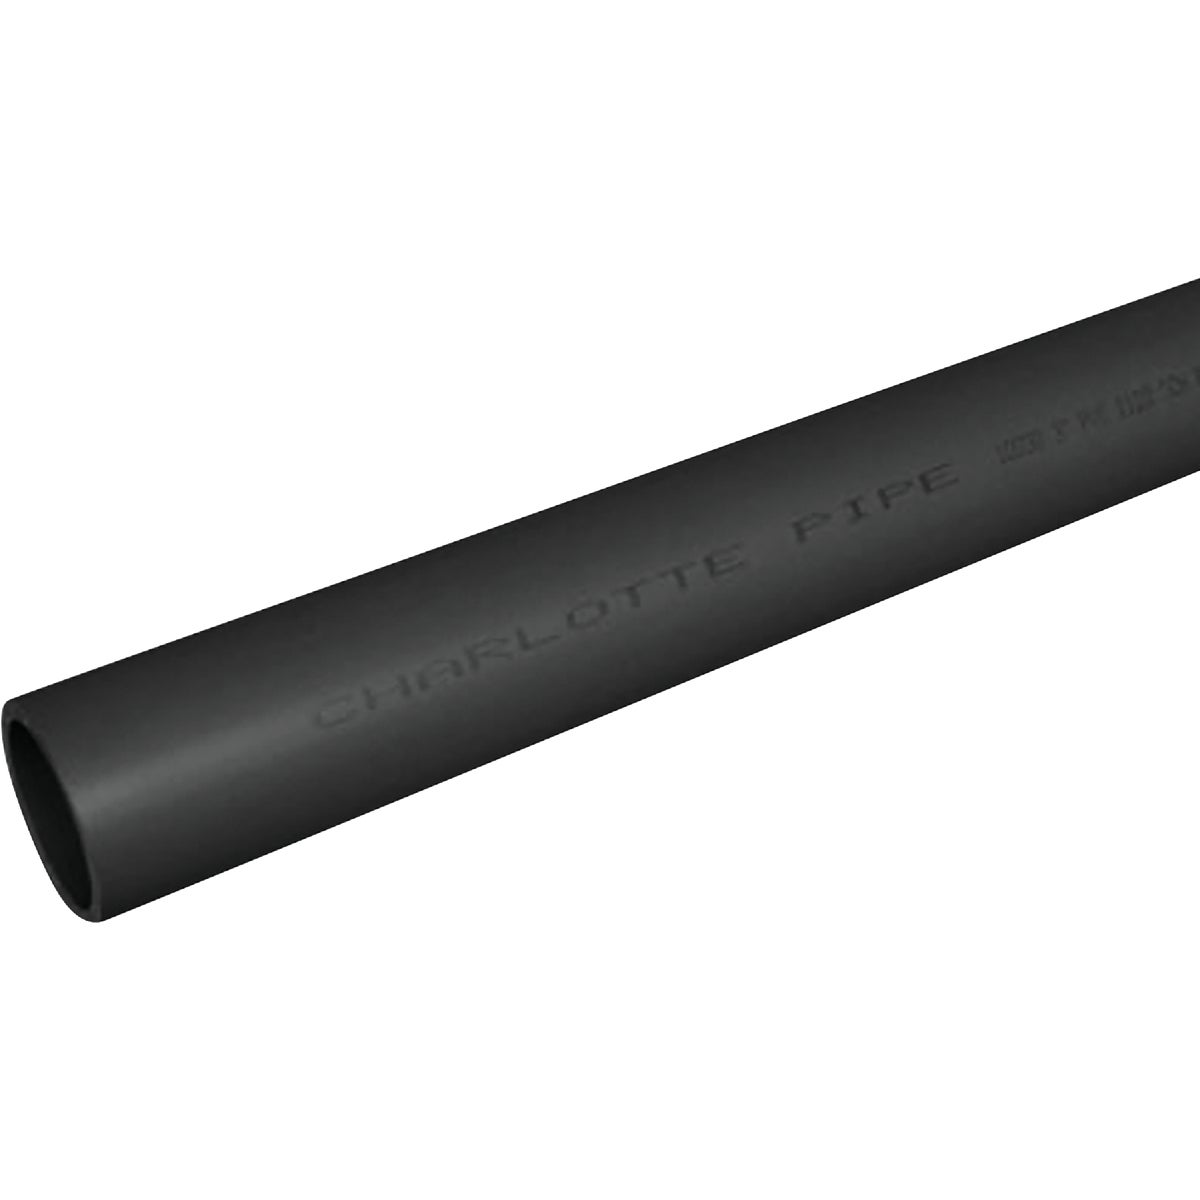 "1-1/2""X20 SCH80 PVC PIPE - 300125 by Genova Inc"